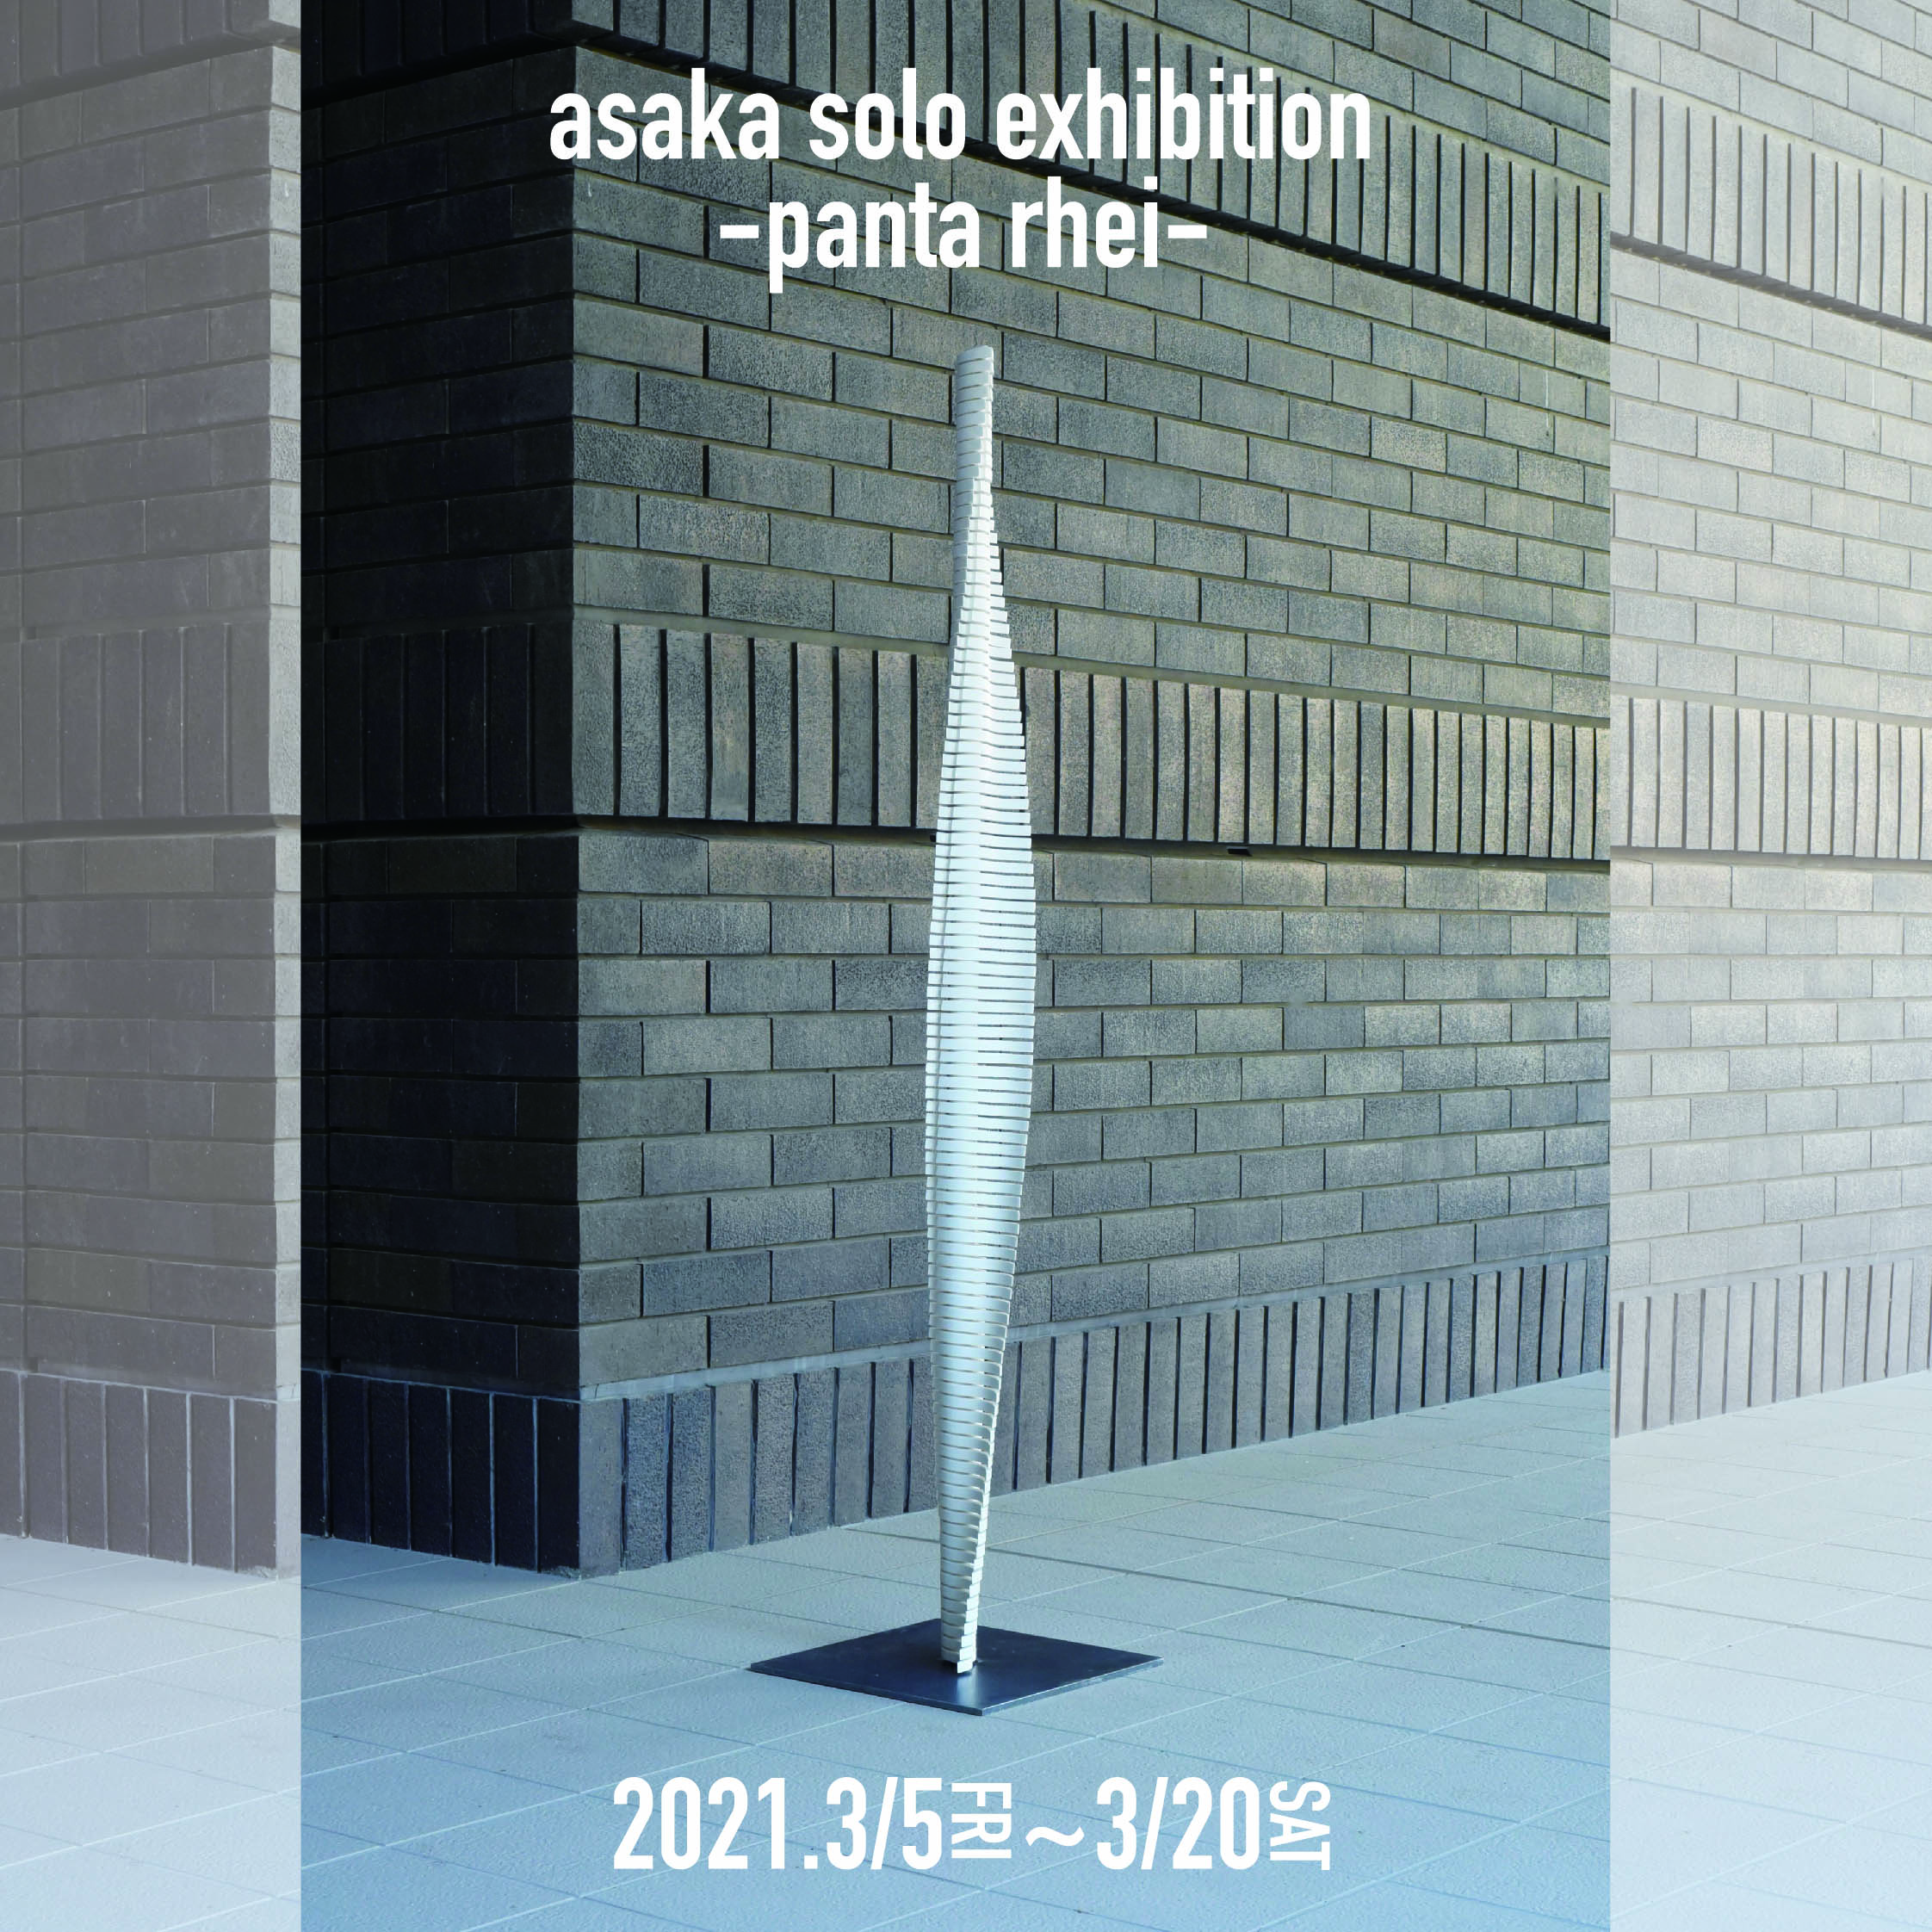 asaka_solo_exhibition_1080